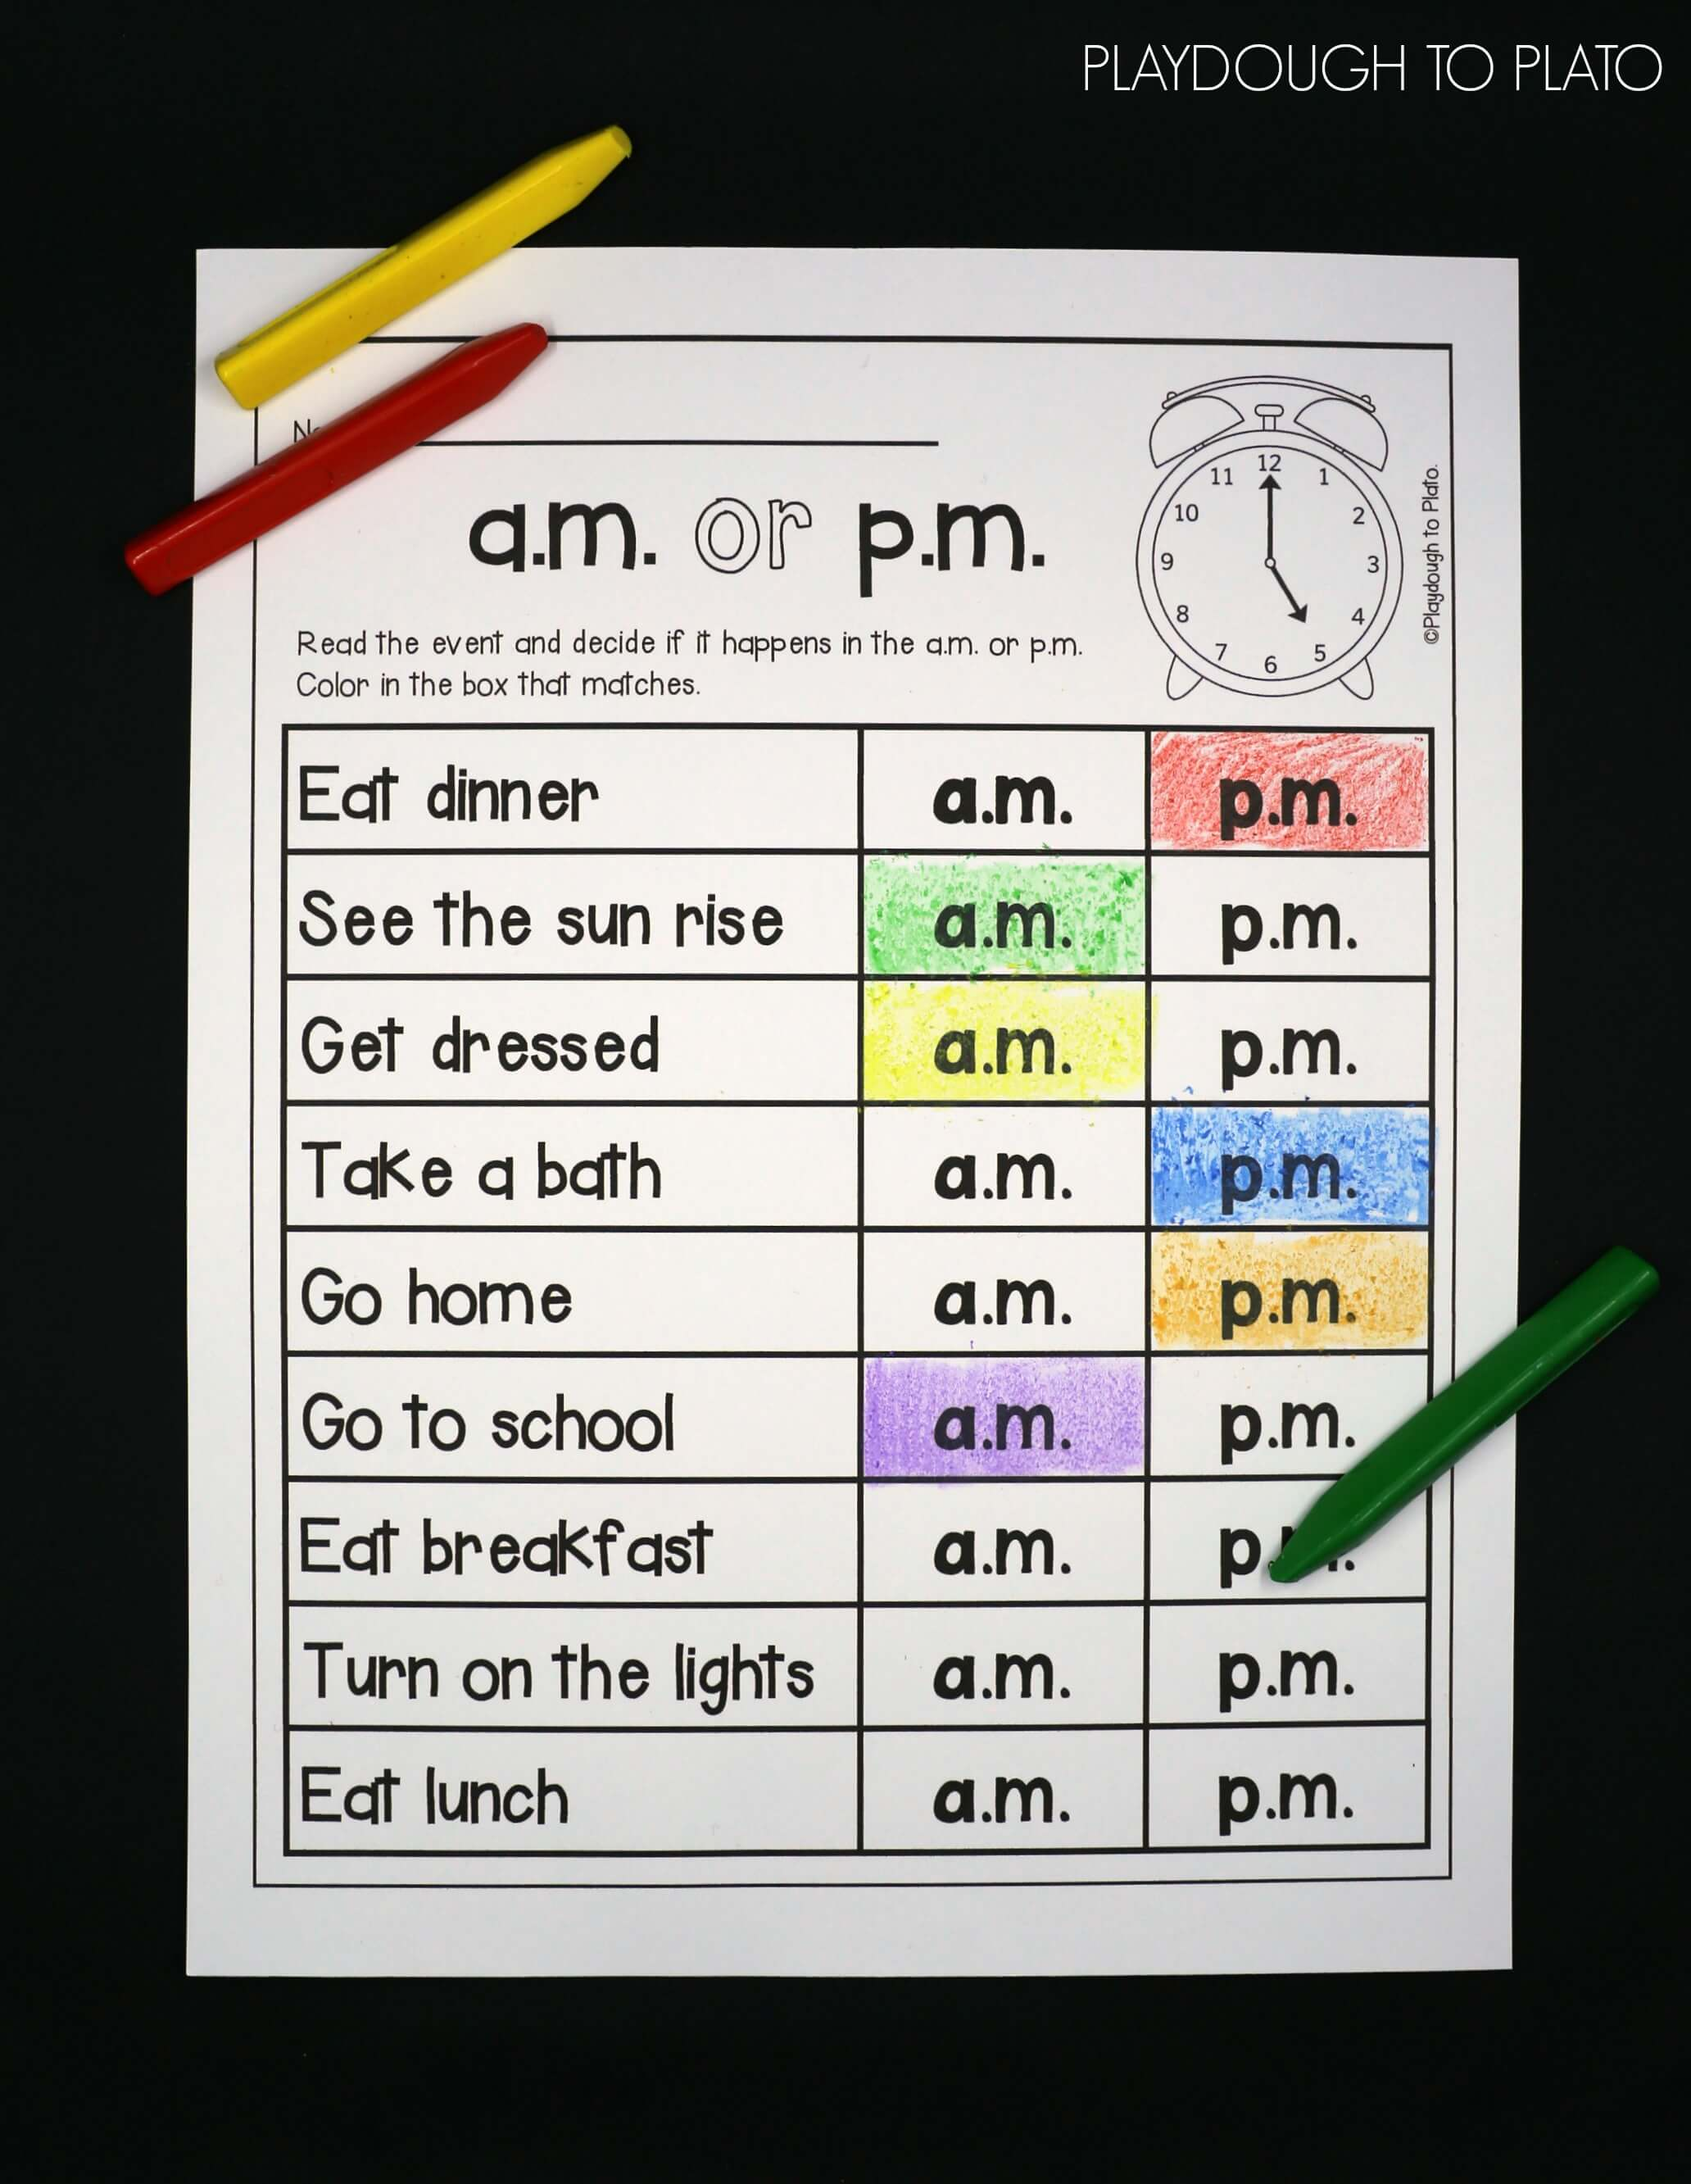 ... way to practice am or pm! Helpful telling time activity for kids